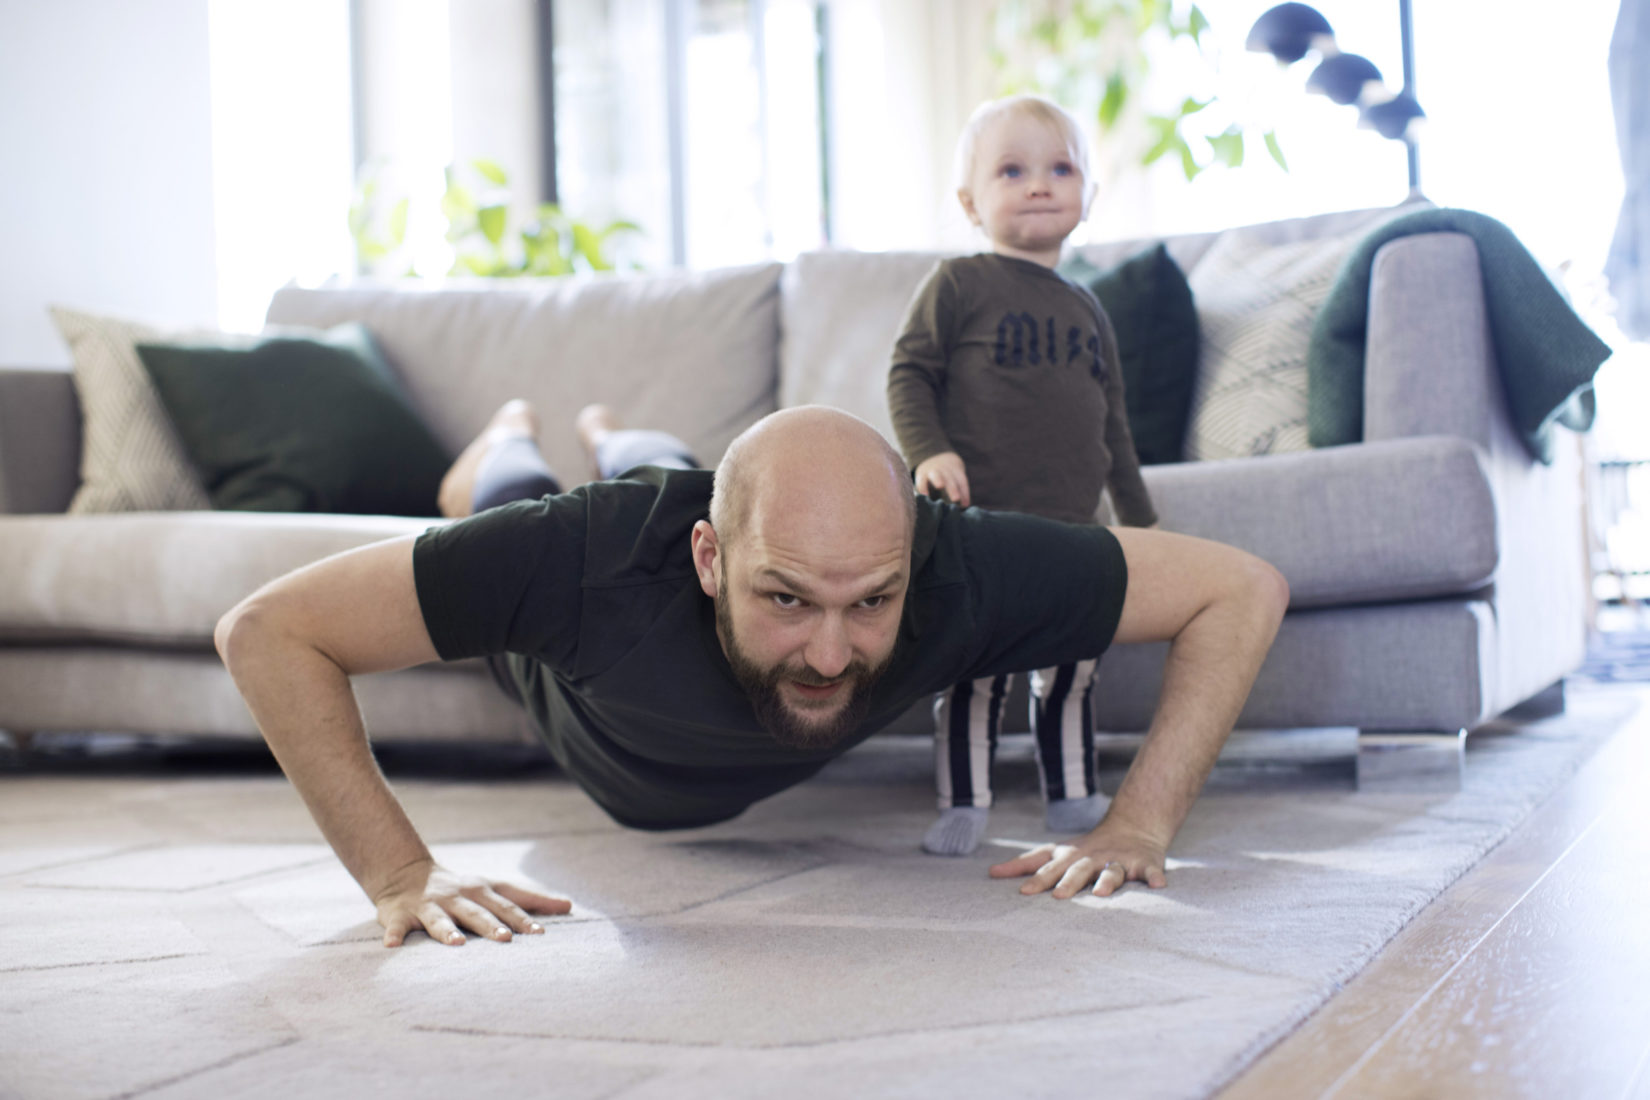 PhDad and child excercising at home on the living room rug